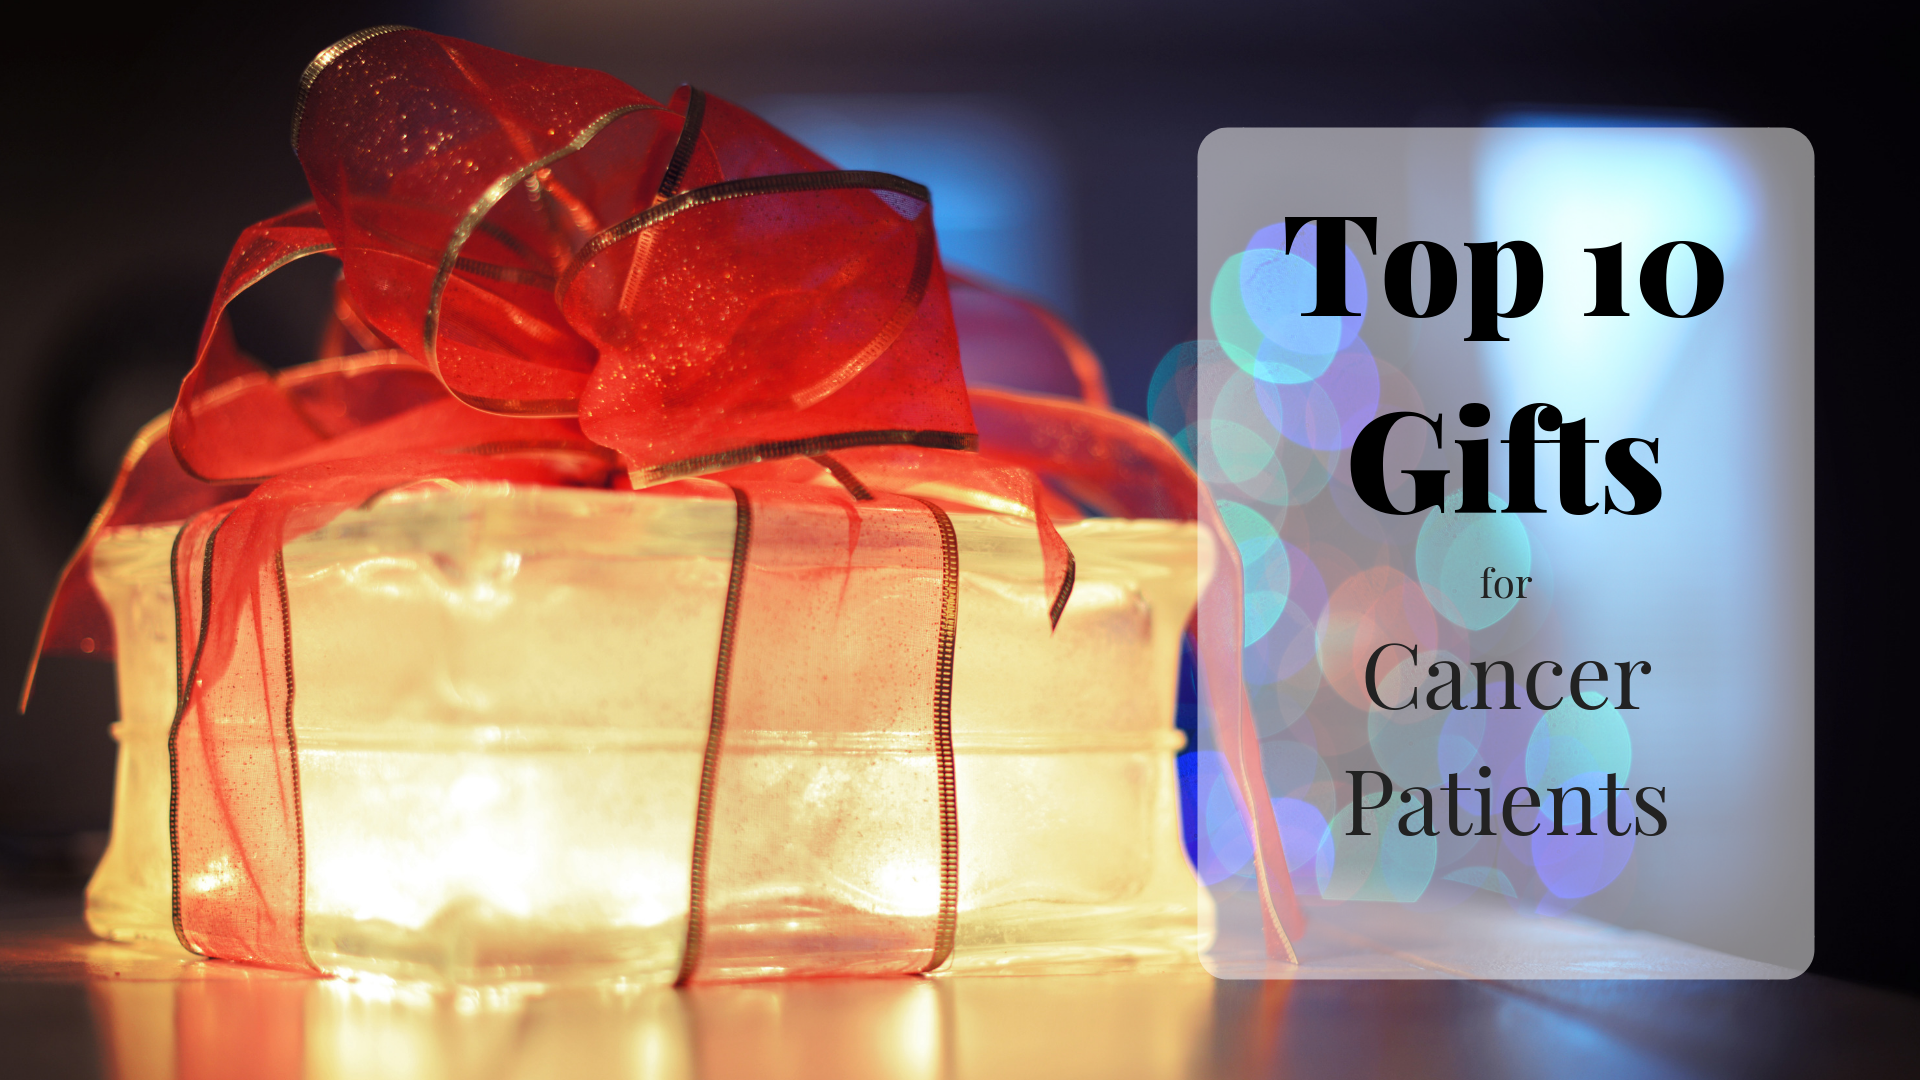 Top 10 Gifts for Cancer Patients